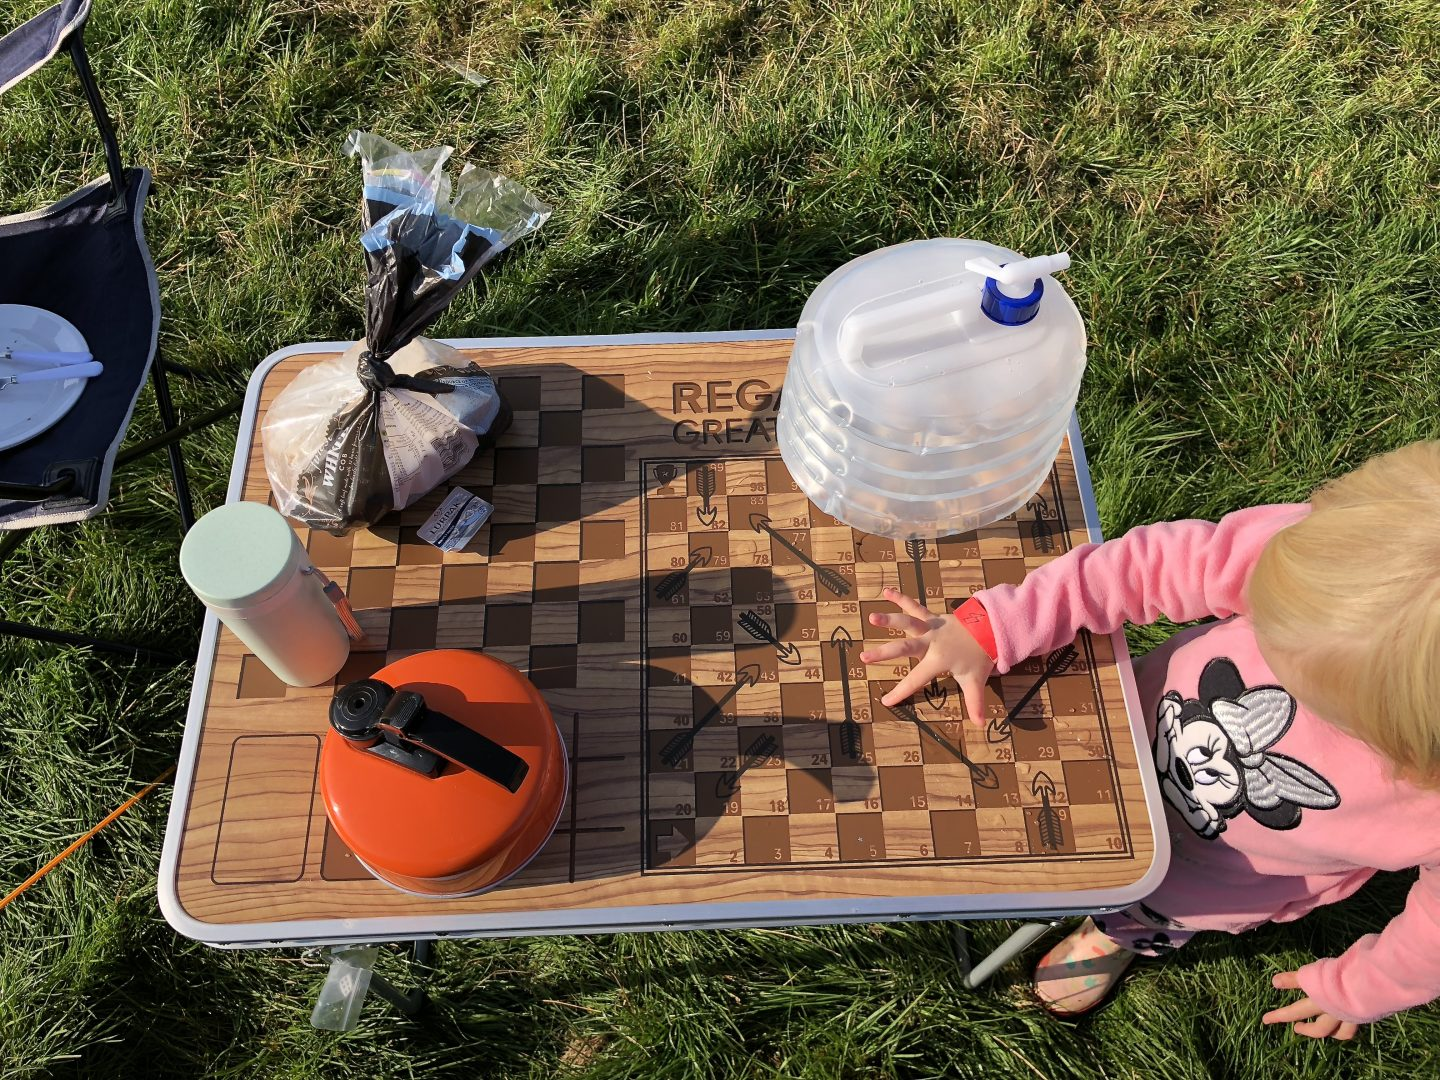 A toddler plays with the checkerboard on a camping games table. The table is on the grass and has a kettle and water canteen on it.